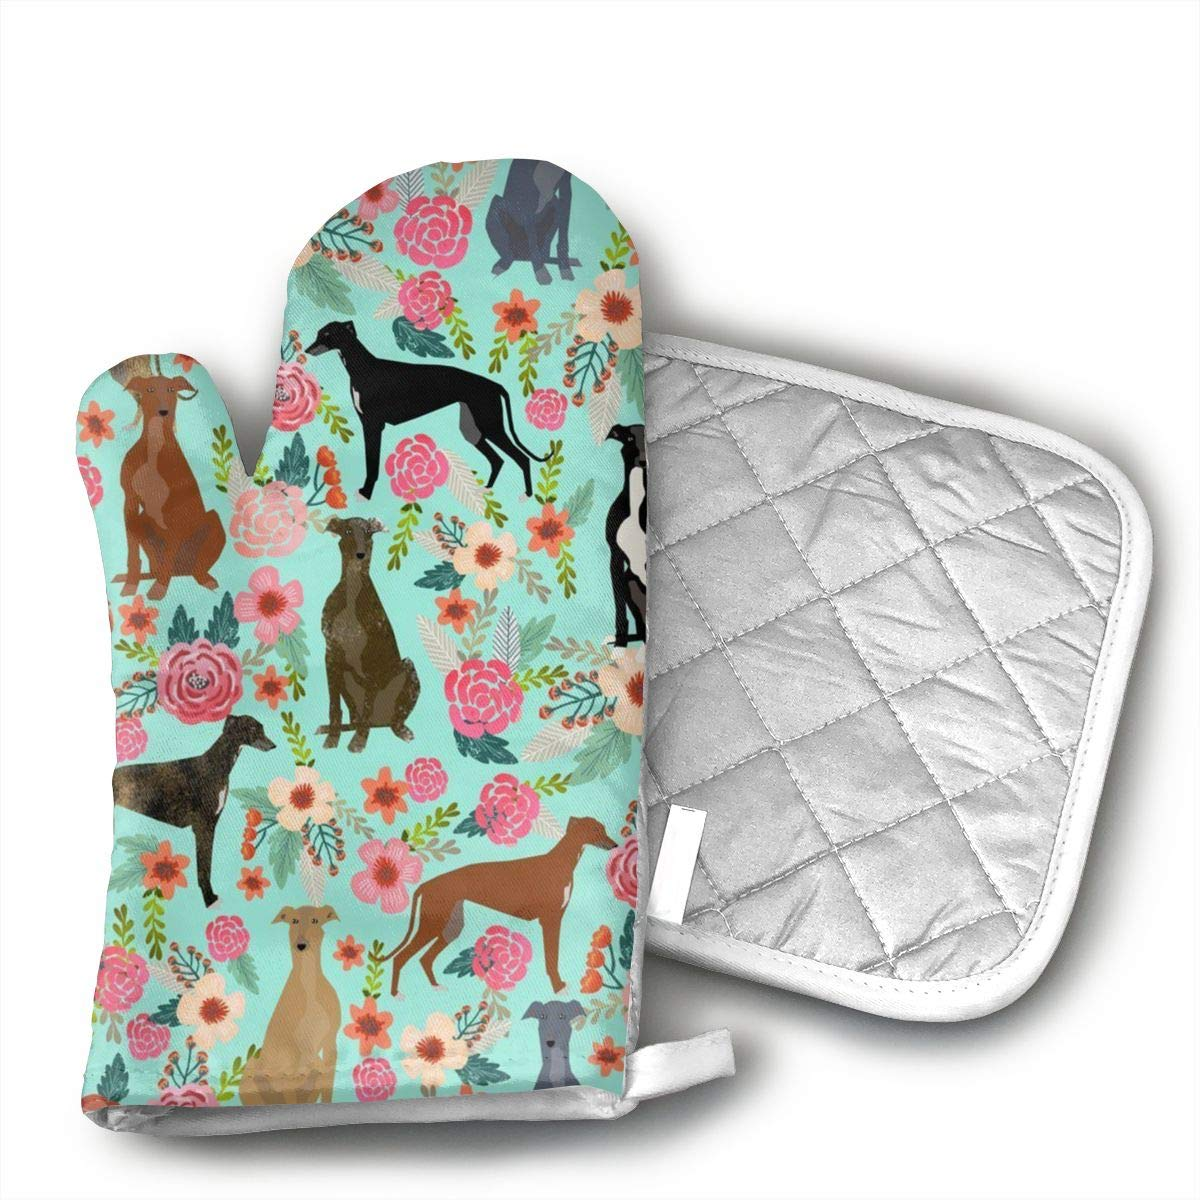 Wiqo9 Greyhound Floral Cute Dog Mint Vintage Oven Mitts and Pot Holders Kitchen Mitten Cooking Gloves,Cooking, Baking, BBQ.